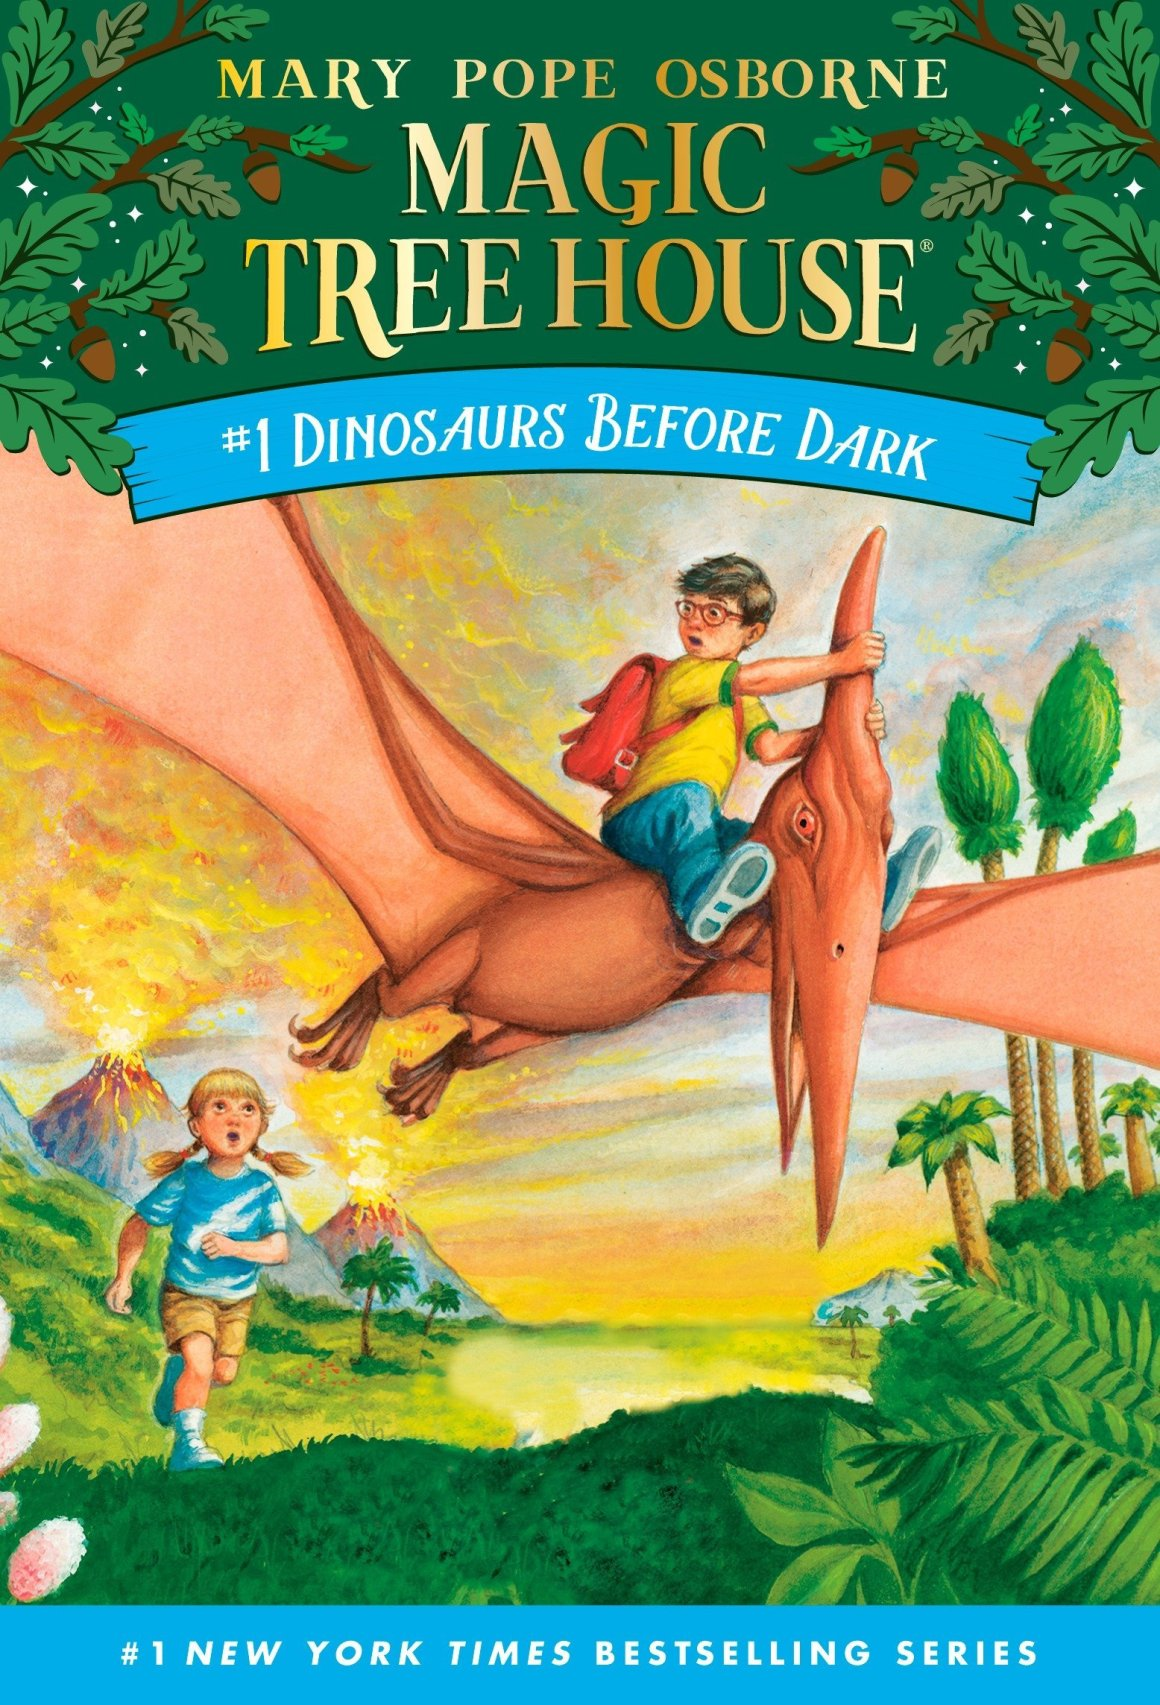 The Magic Treehouse: Dinosaurs Before Dark is one of the best audiobooks for 5-year olds.